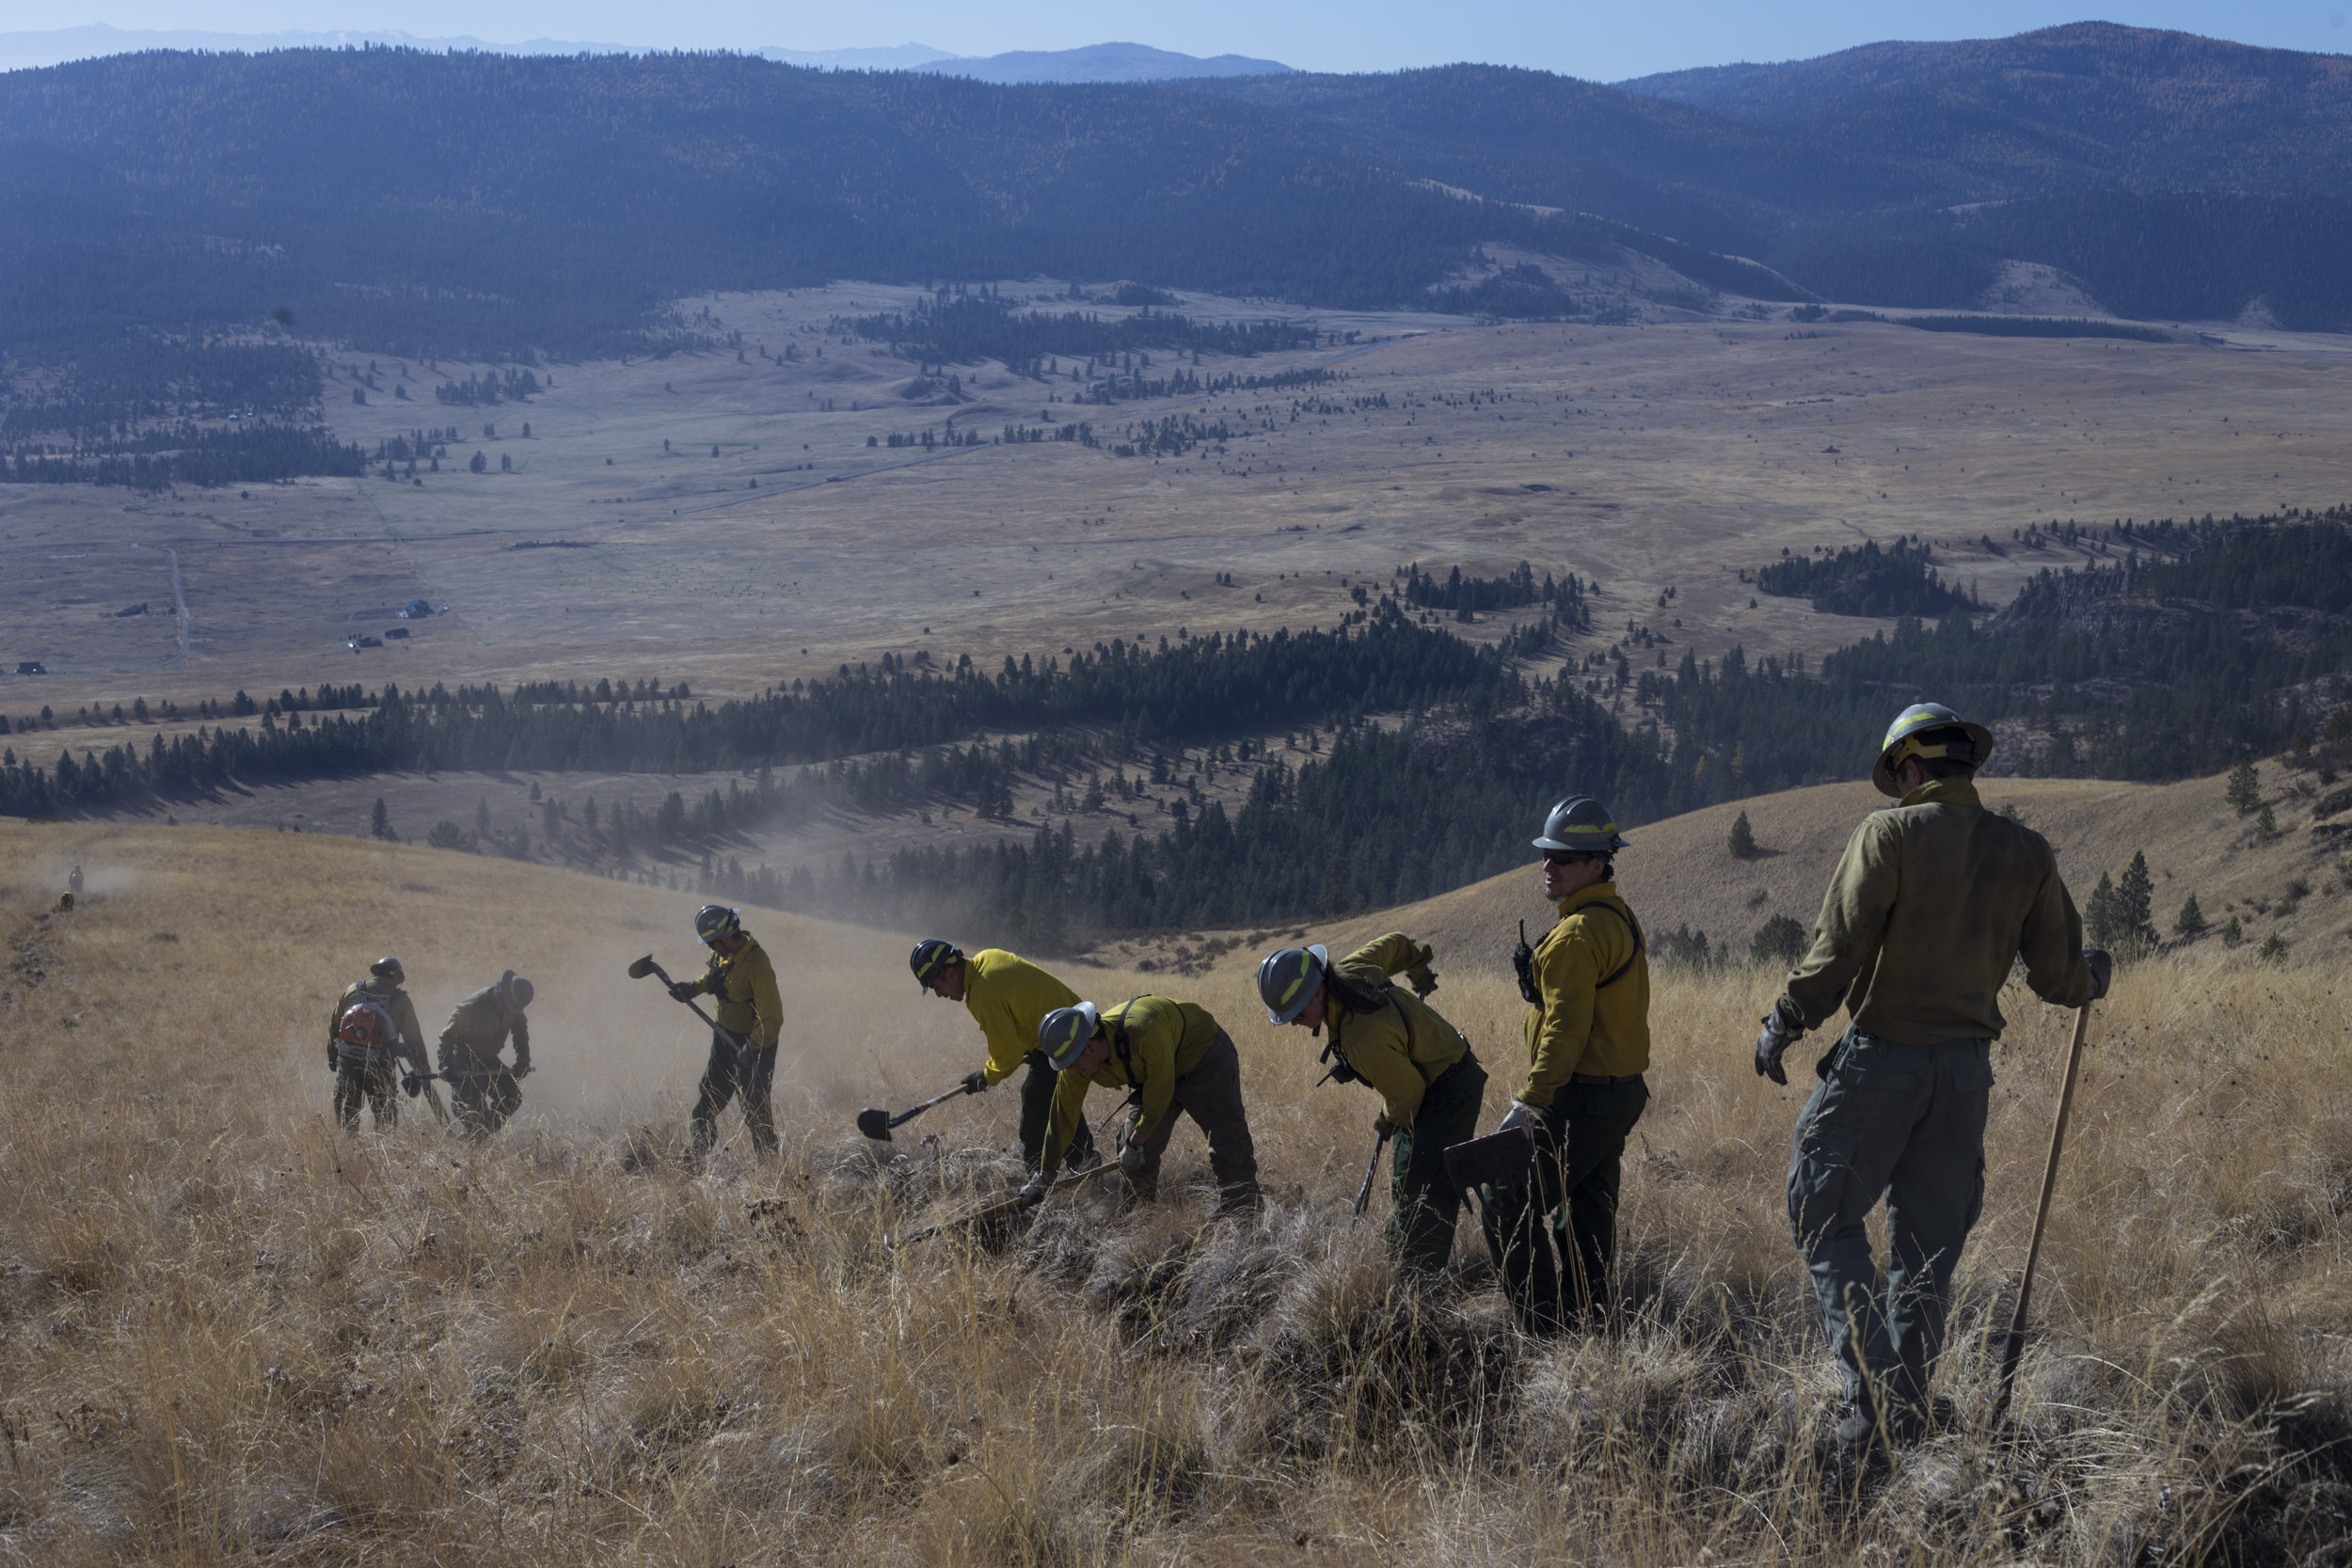 Members of the Confederated Salish and Kootenai Tribes Division of Fire prepare a barrier for a prescribed burn just along a ridge line outside of Elmo, Montana., on Tuesday, October 24, 2017.